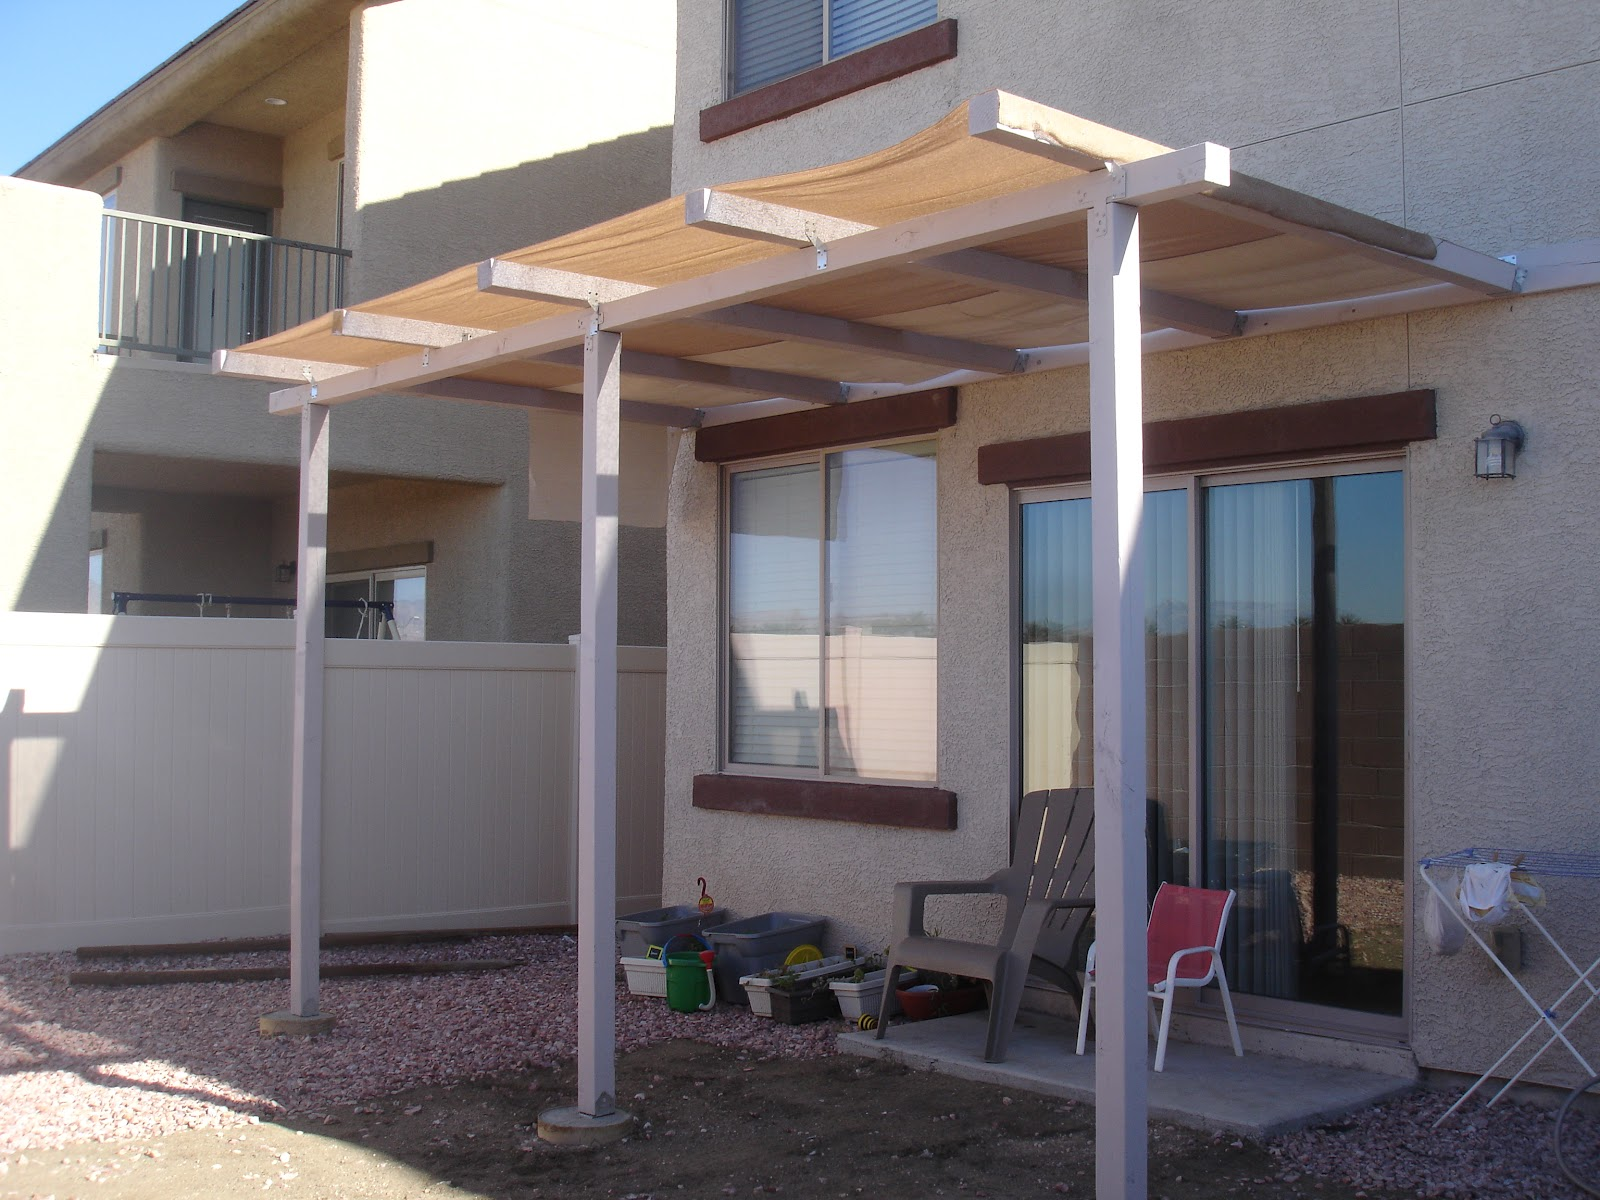 Alex Haralson: Update On Our DIY Patio Cover